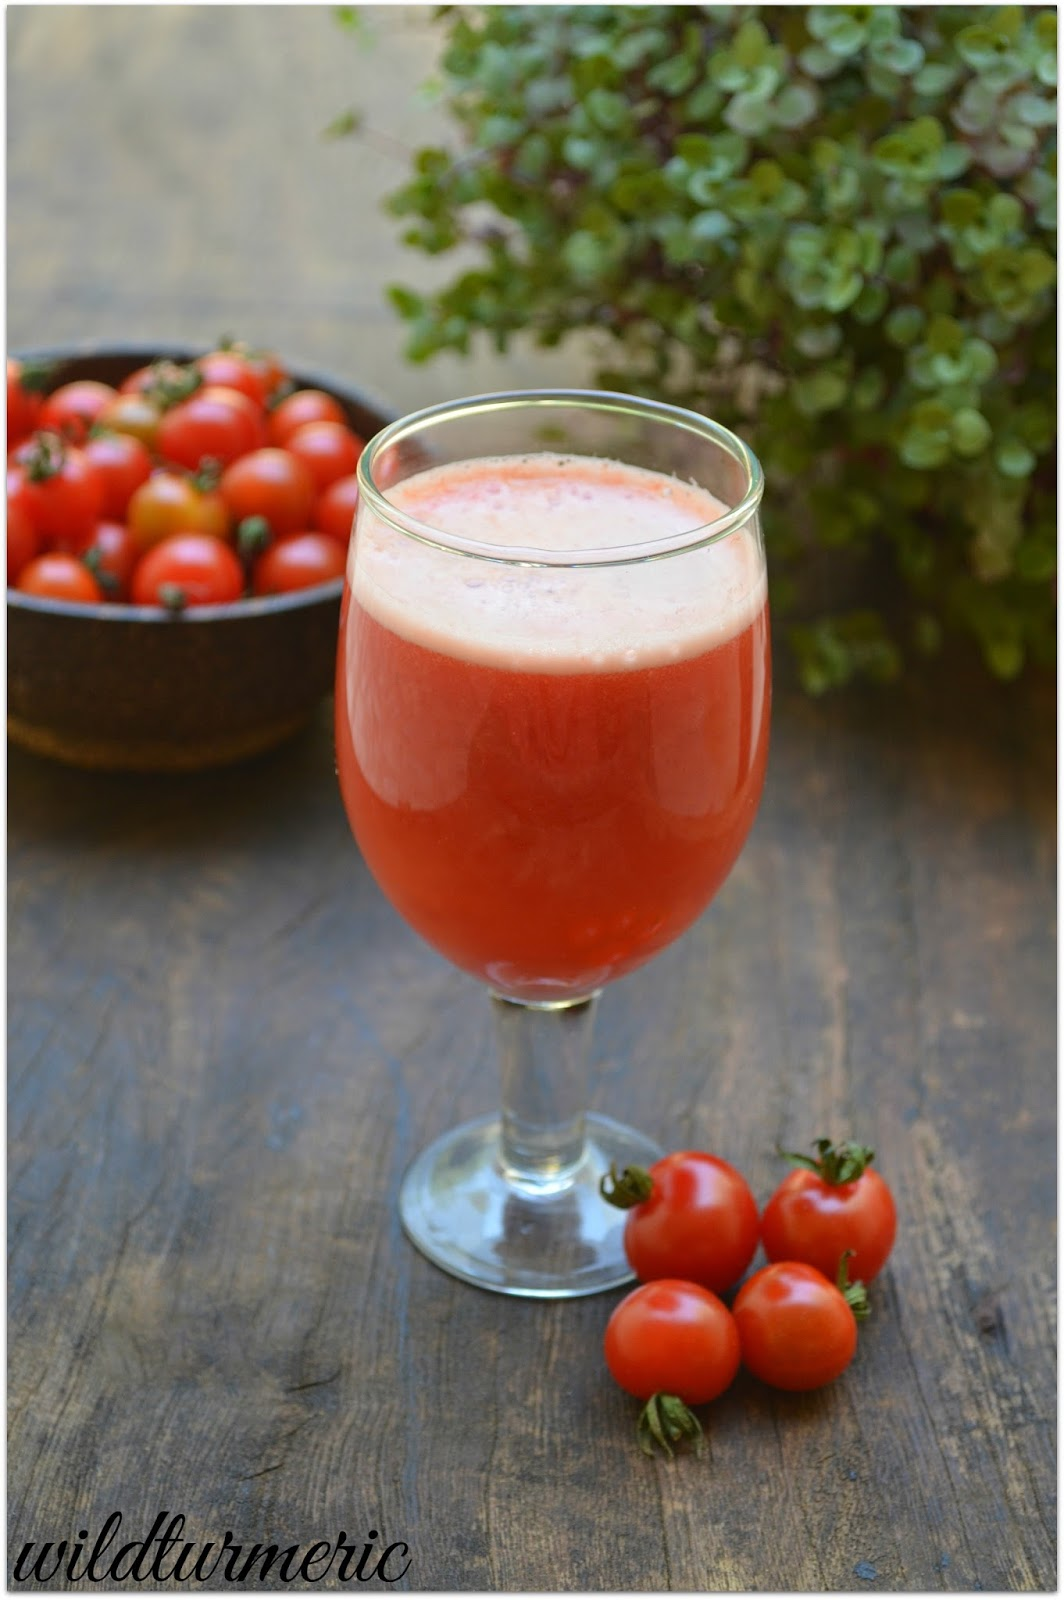 how to make tomato juice from tomatoes